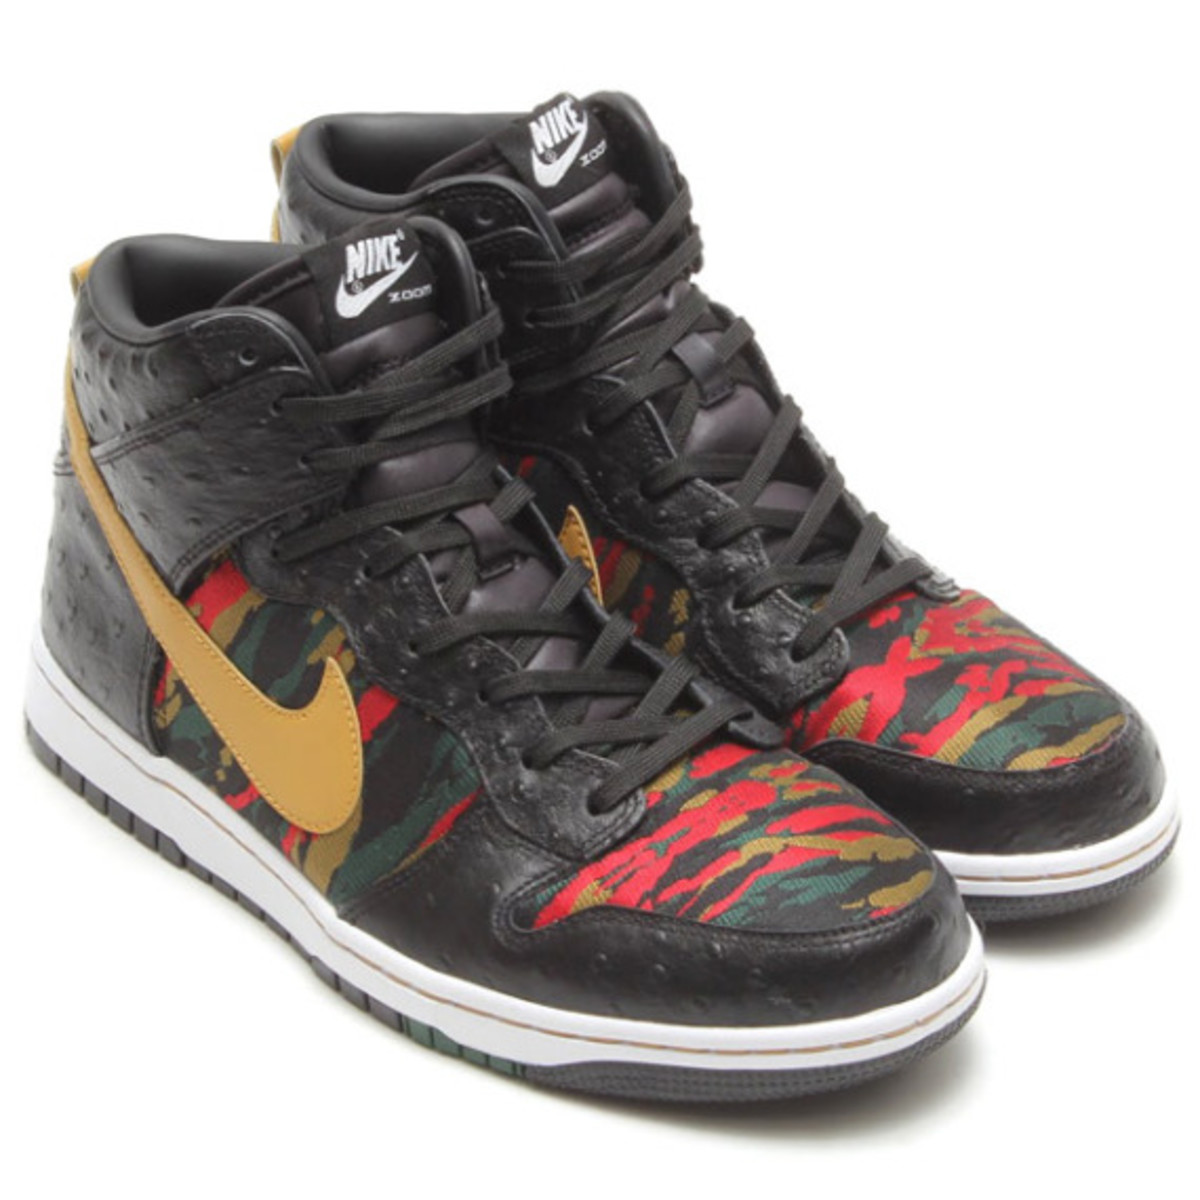 nike-sb-dunk-high-cmft-prm-qs-black-flat-gold-03